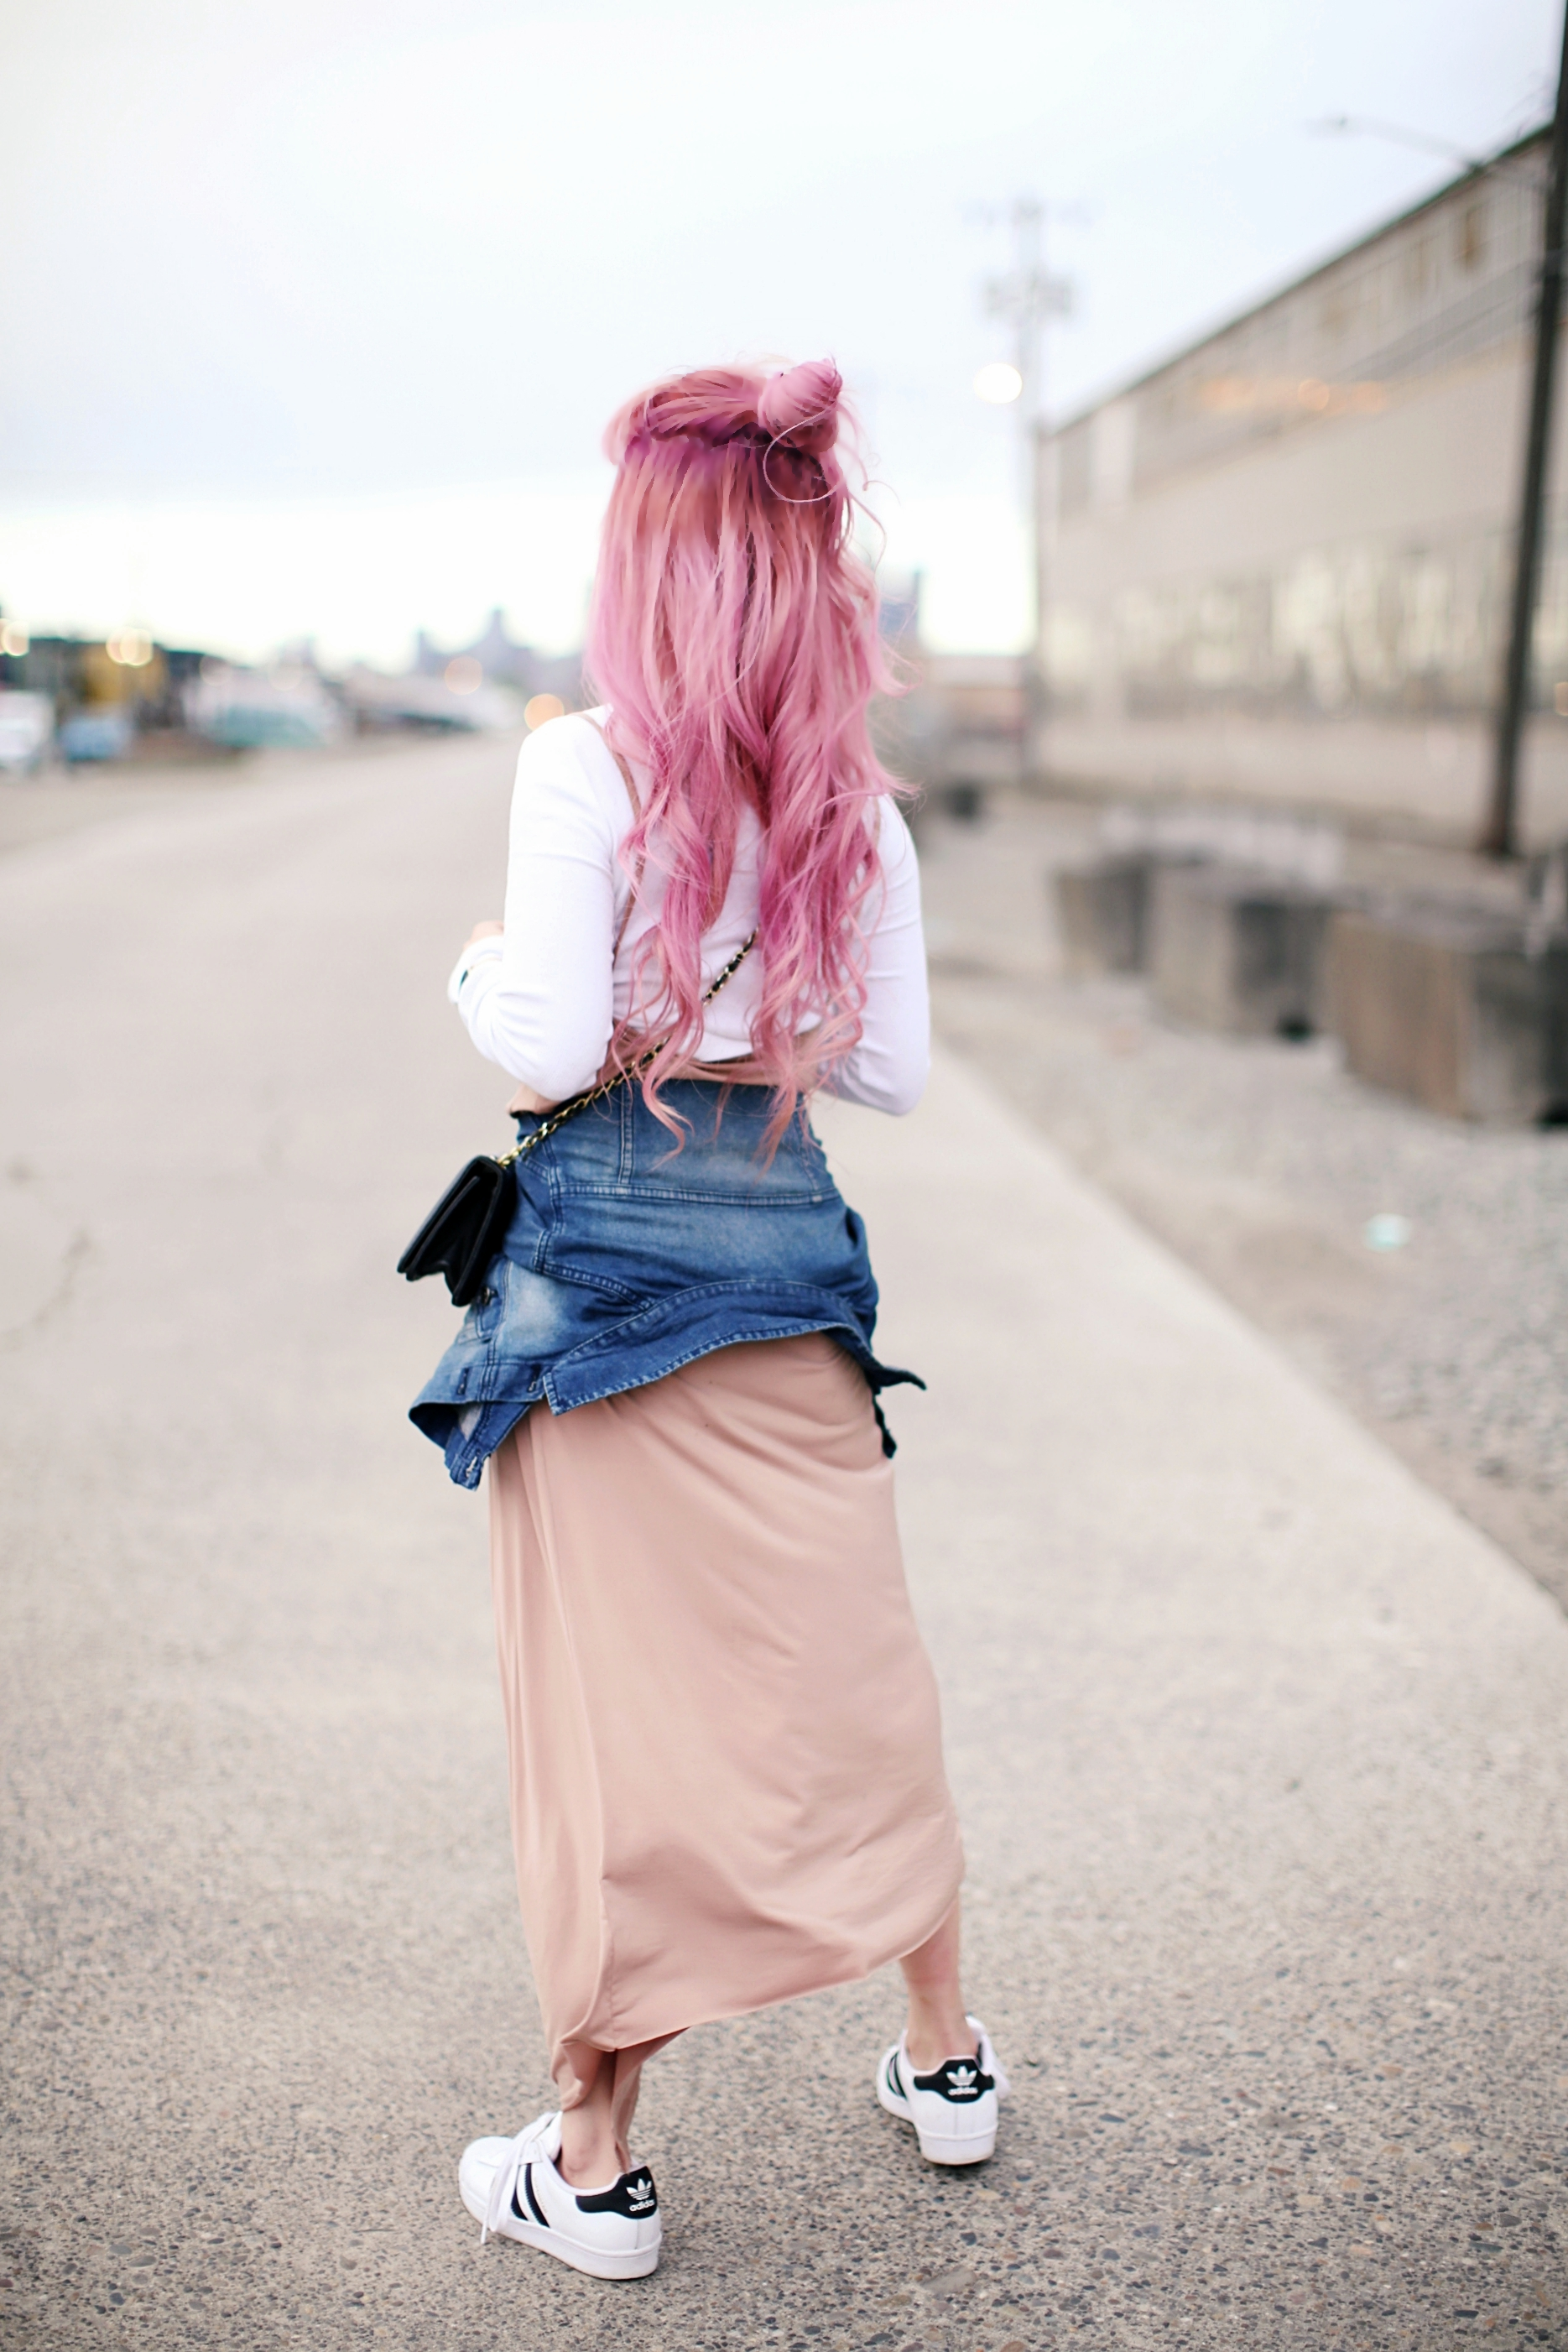 Forever 21 Long sleeve crop top_ZARA blush slip dress_Adidas Super Star sneakers_Vintage Chanel crossbodybag_Daniel Wellington Petite rose gold watch_Guess denim jacket_Aika's Love Closet_Seattle Fashion style blogger_Japanese_pink hair 3